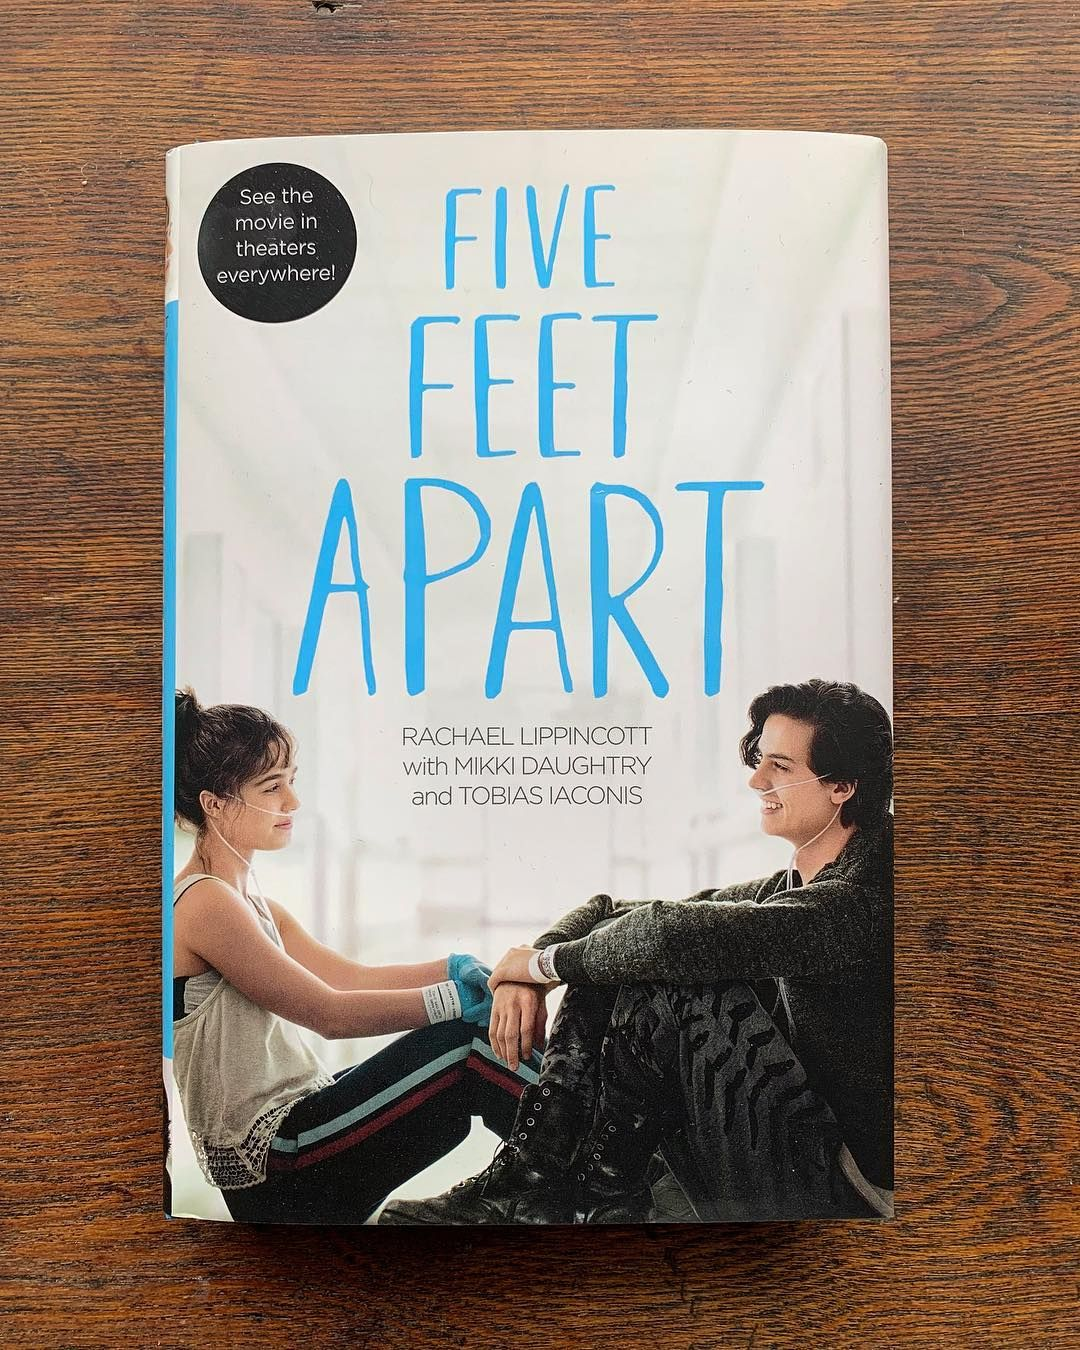 Movie Tie-in Edition Of Five Feet Apart